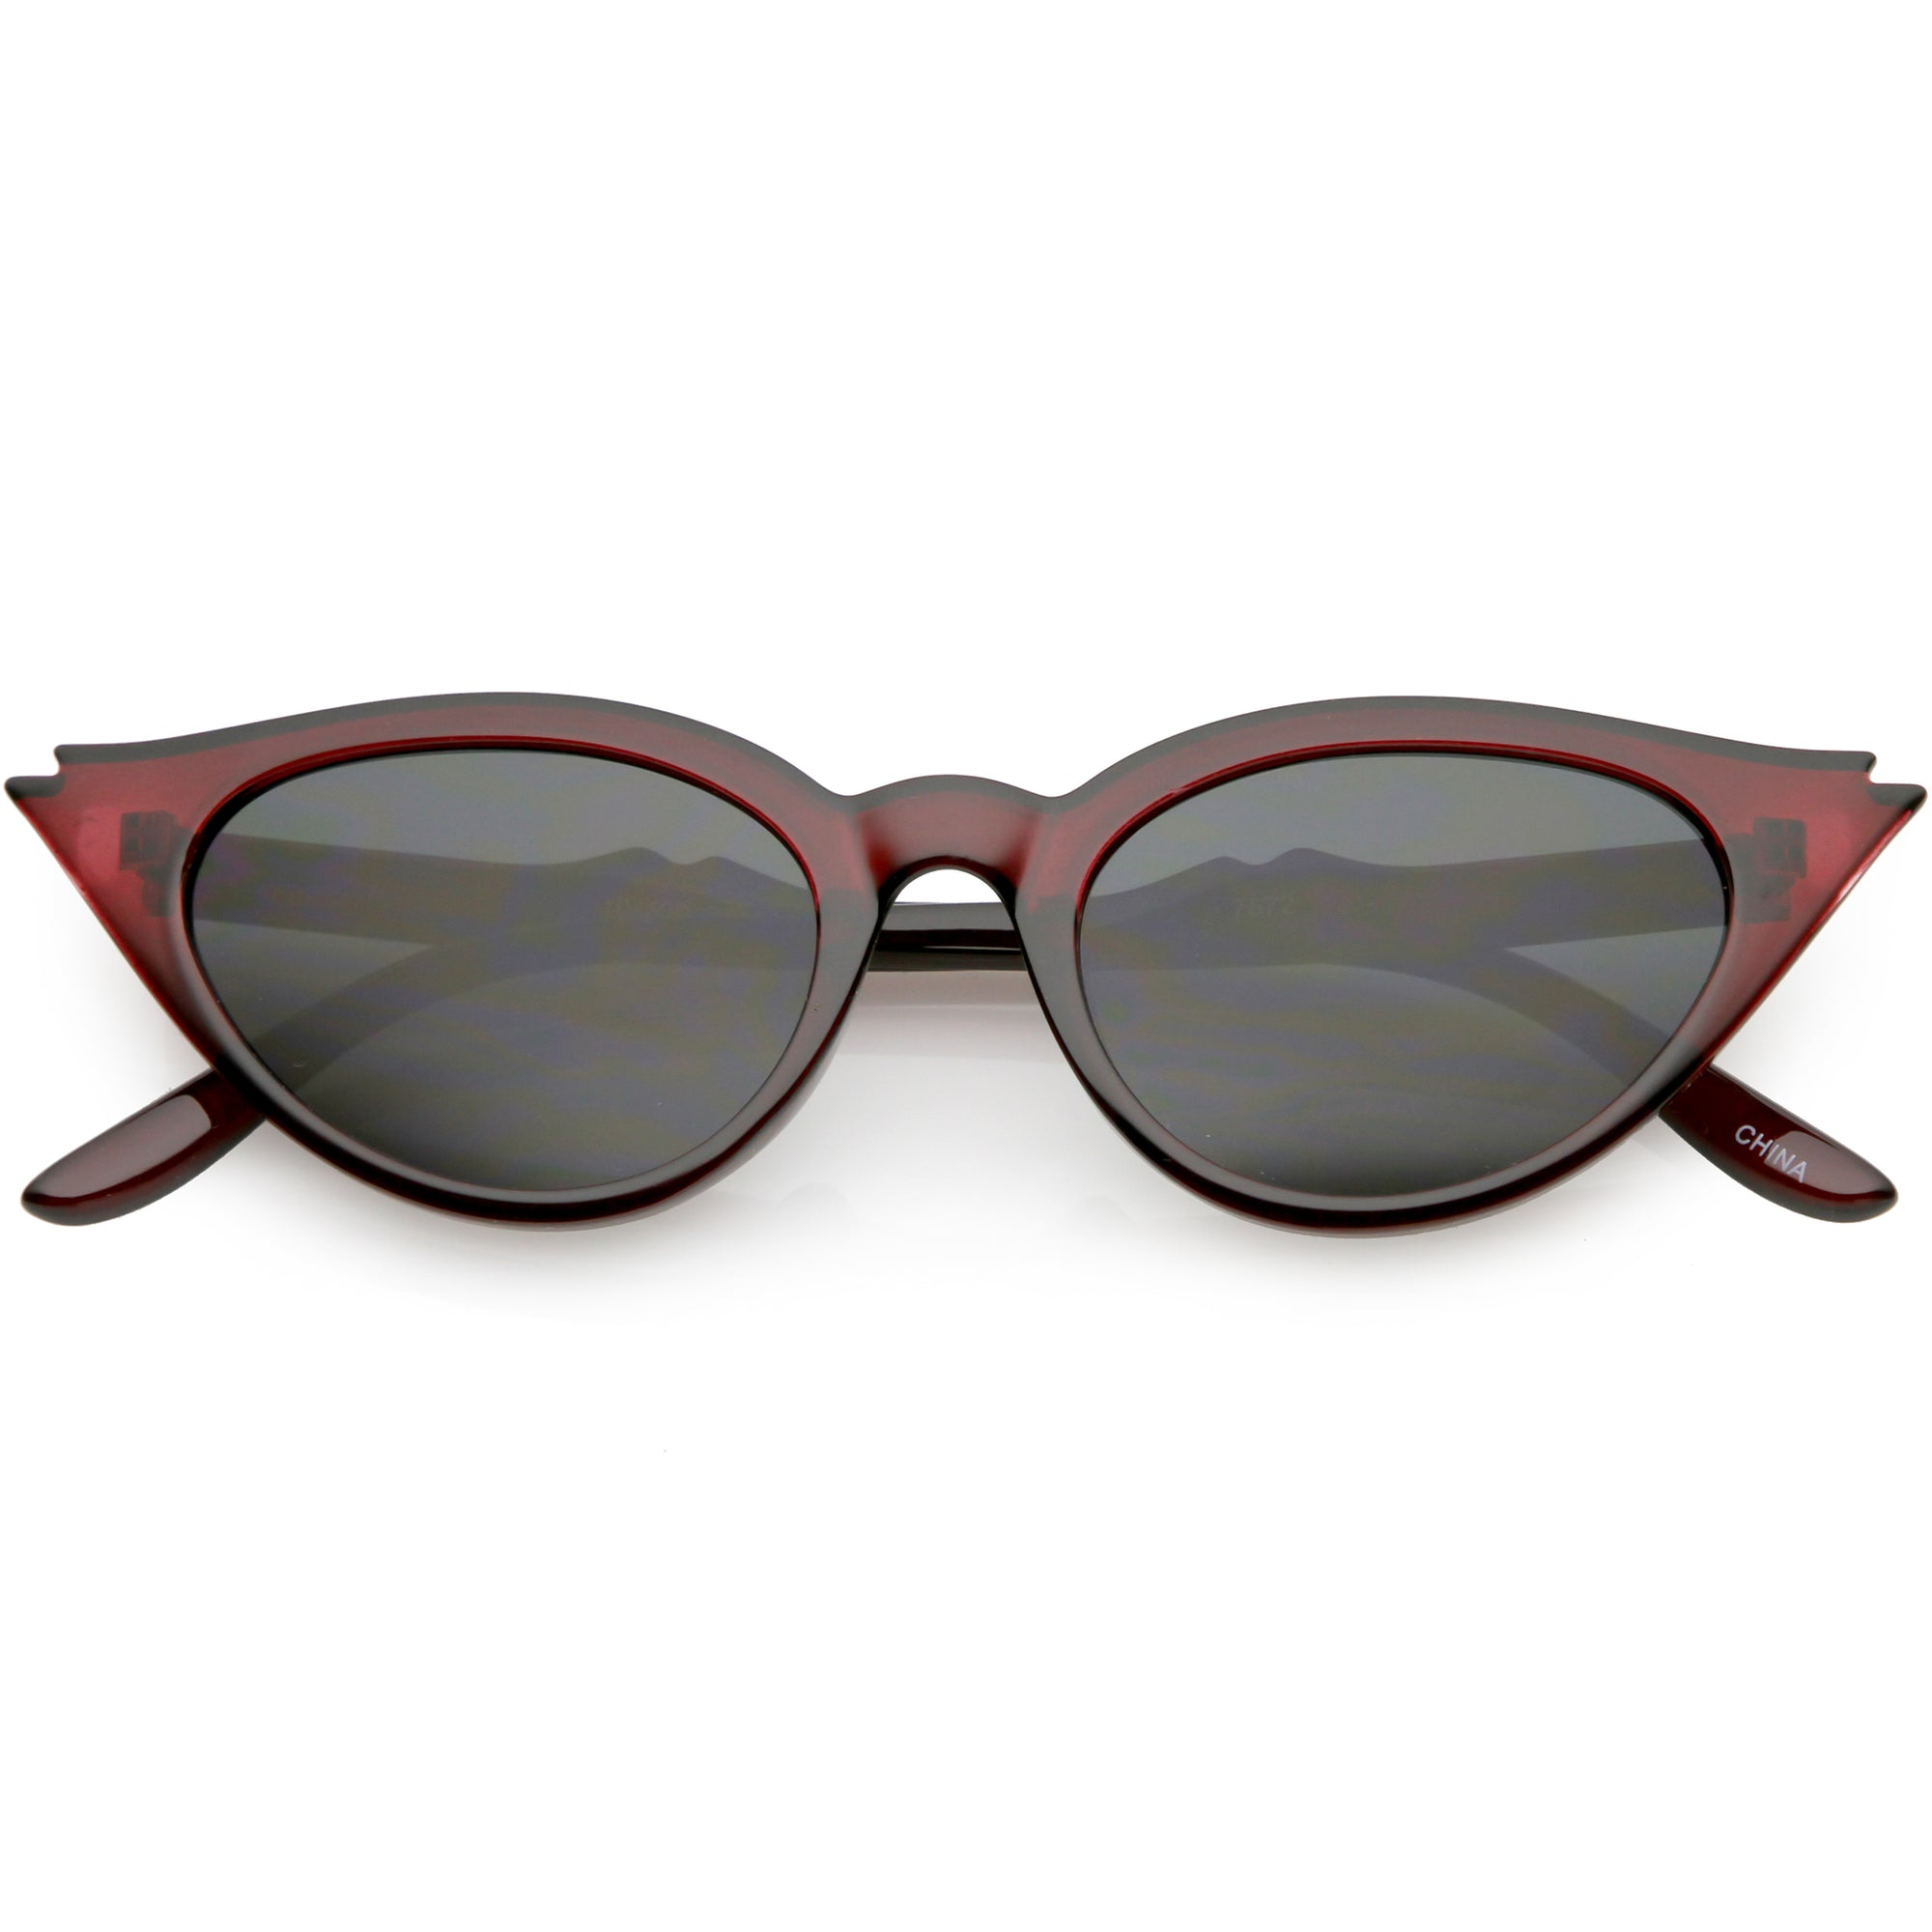 Women's Retro 1950's Notched Cat Eye Sunglasses C756